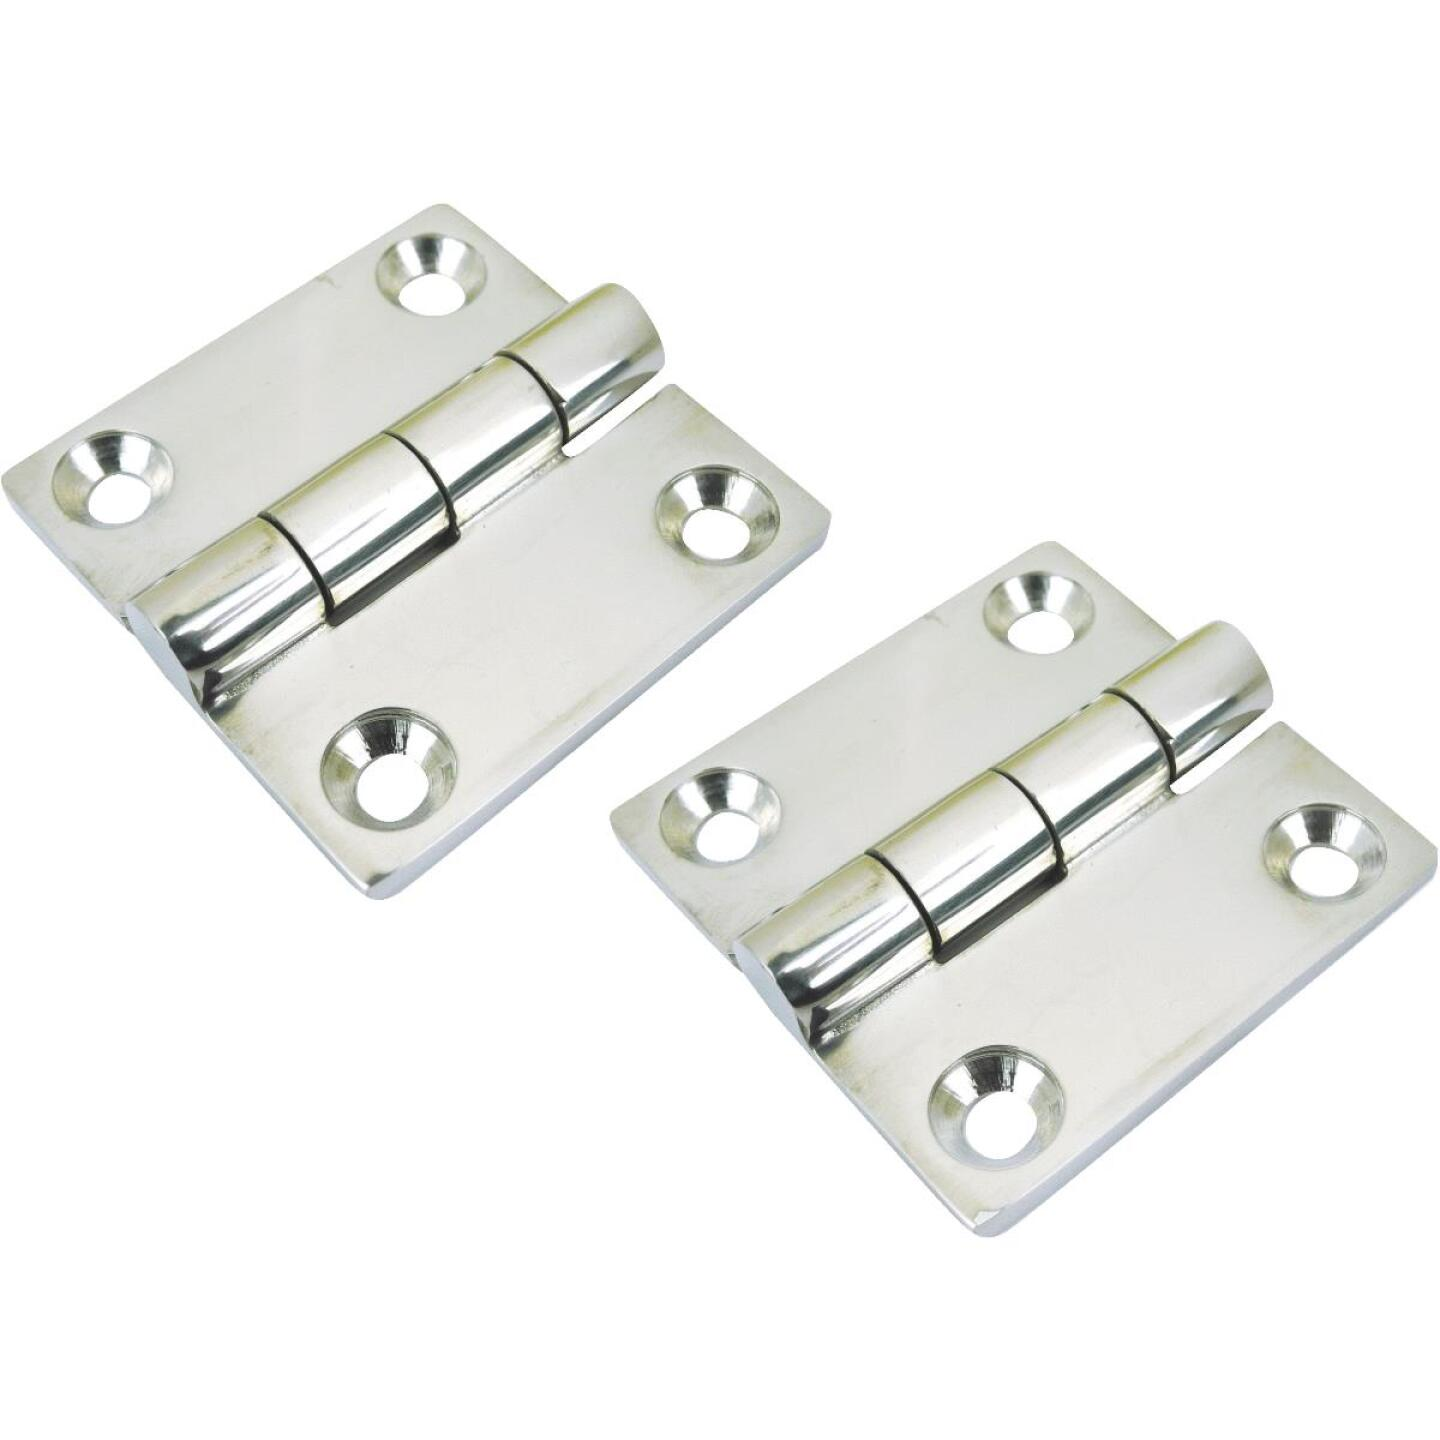 Seachoice 2 In. Stainless Steel Butt Hinge (2-Pack) Image 1